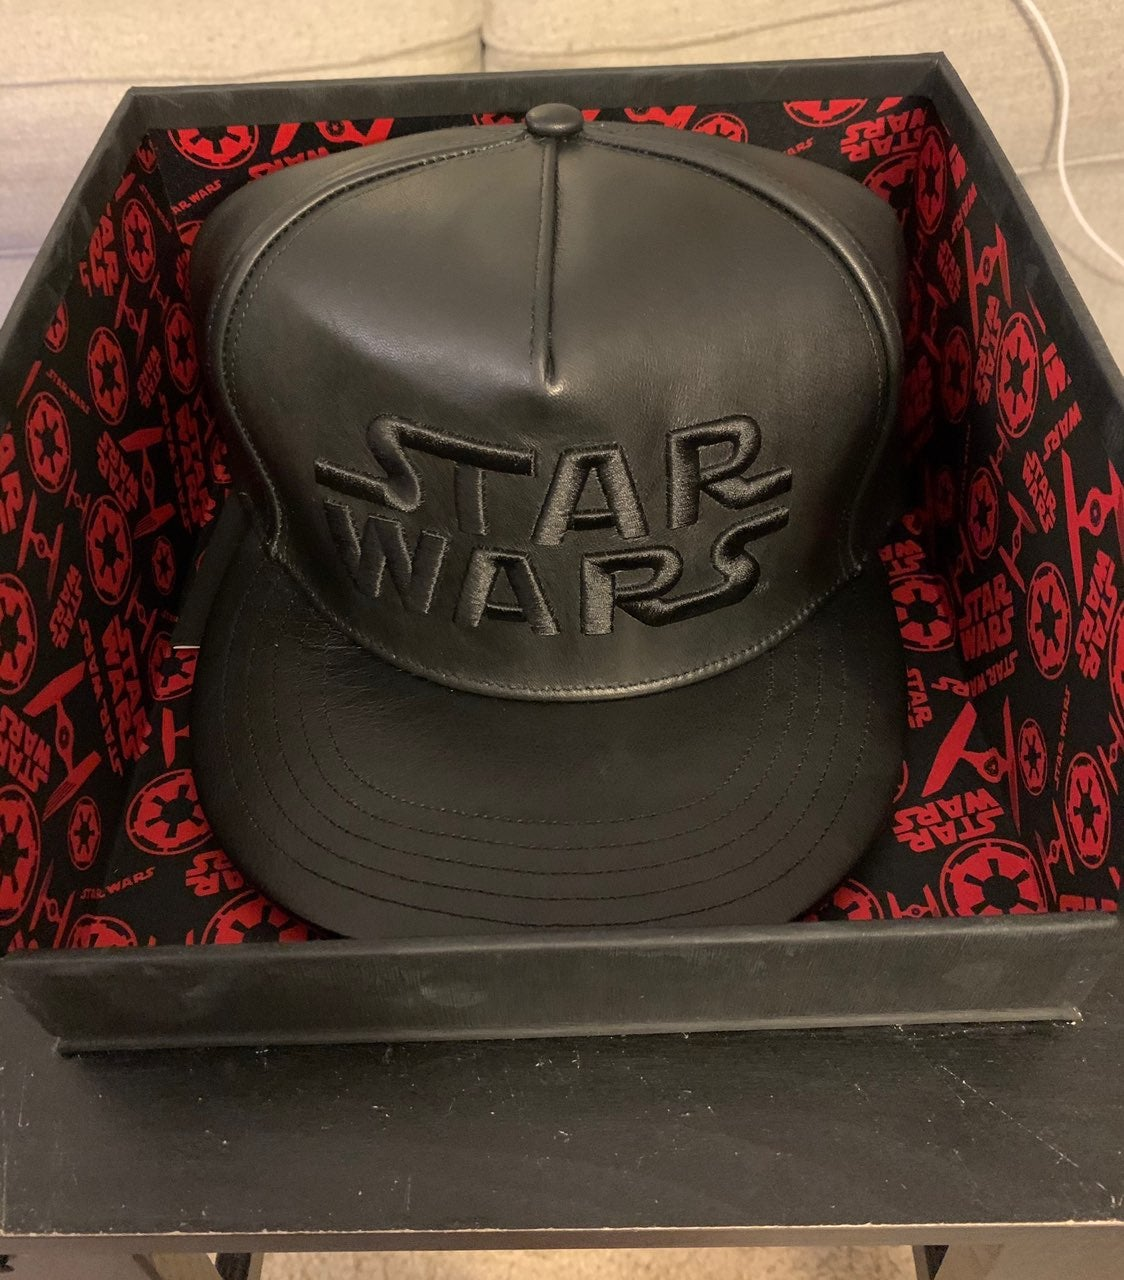 Star Wars Limited Edition Leather Hat